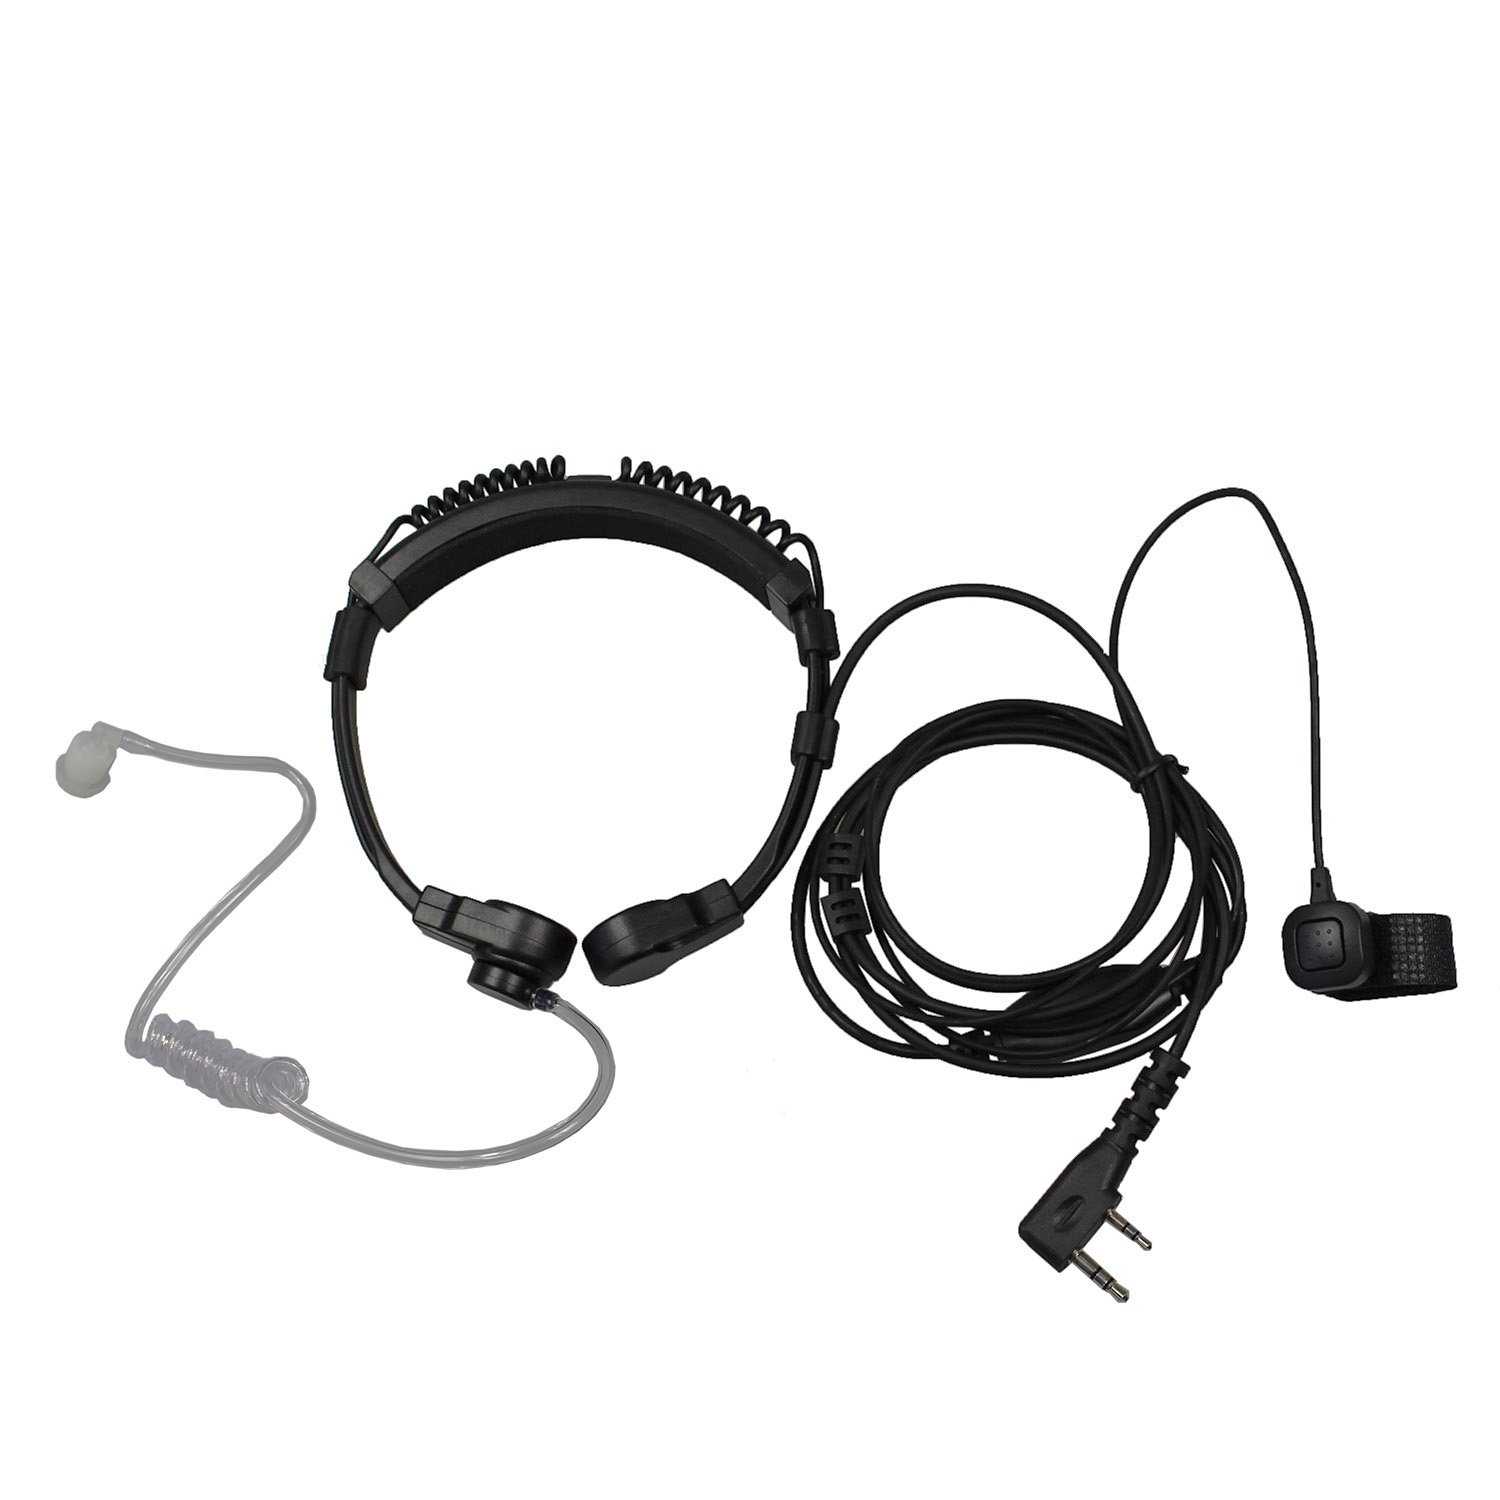 GoodQbuy Flexible Microphone Acoustic Earpiece